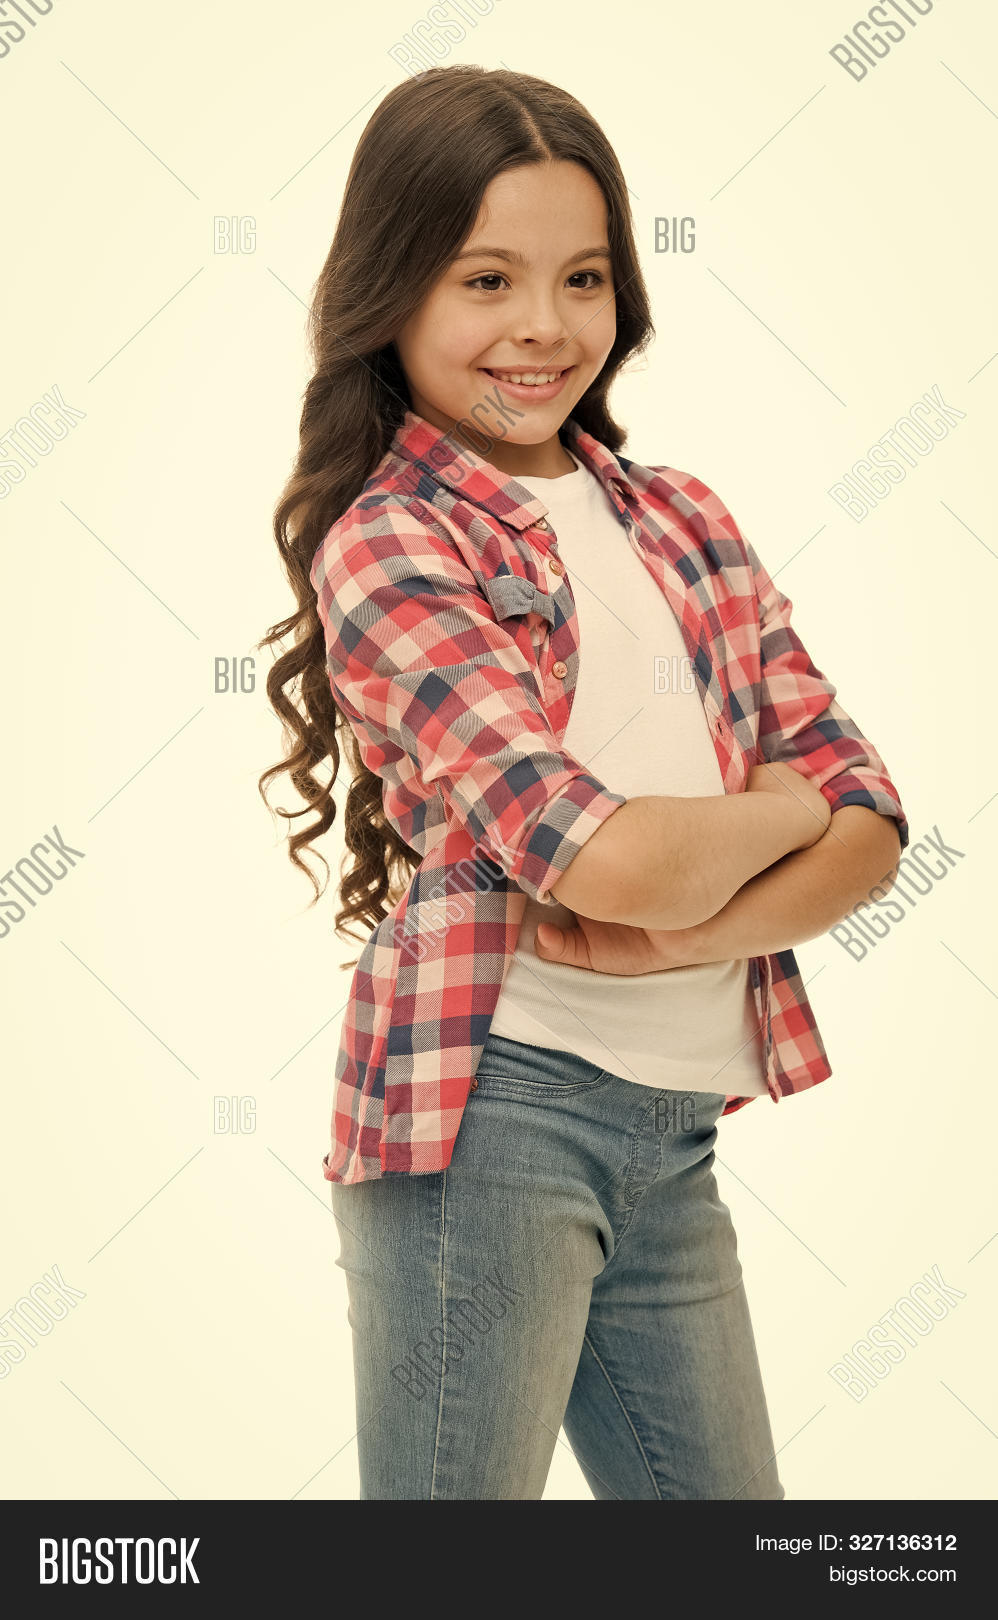 adorable,baby,background,care,charming,cheerful,chest,child,childhood,confidence,confident,confidently,crossed,curly,cute,enjoy,face,feel,girl,hair,hairdresser,hairstyle,hands,happiness,happy,hold,isolated,kid,little,long,new,perfect,posing,pretty,shampoo,shirt,small,smile,smiling,style,stylish,upbringing,white